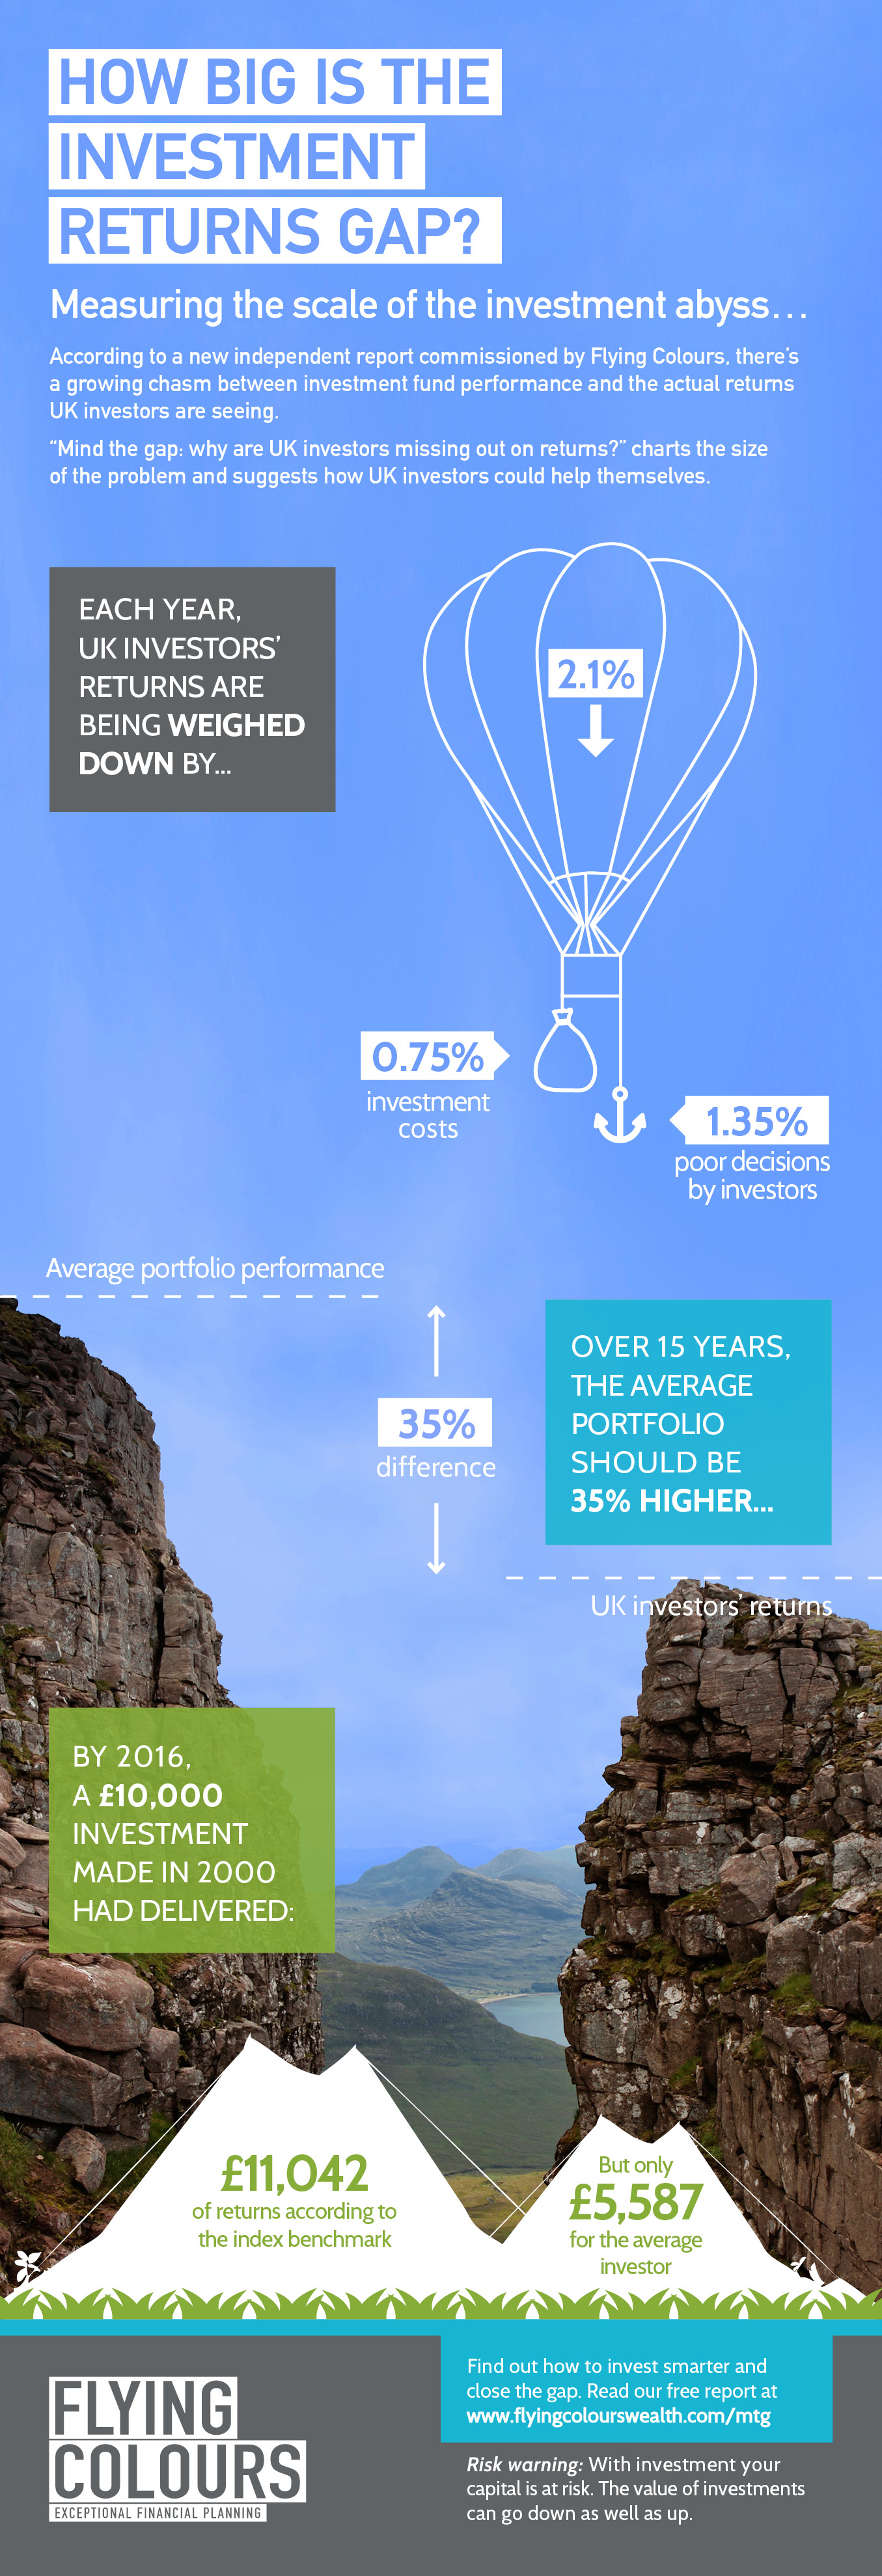 Flying Colours Mind the Gap Infographic| Why do investors miss out on returns?